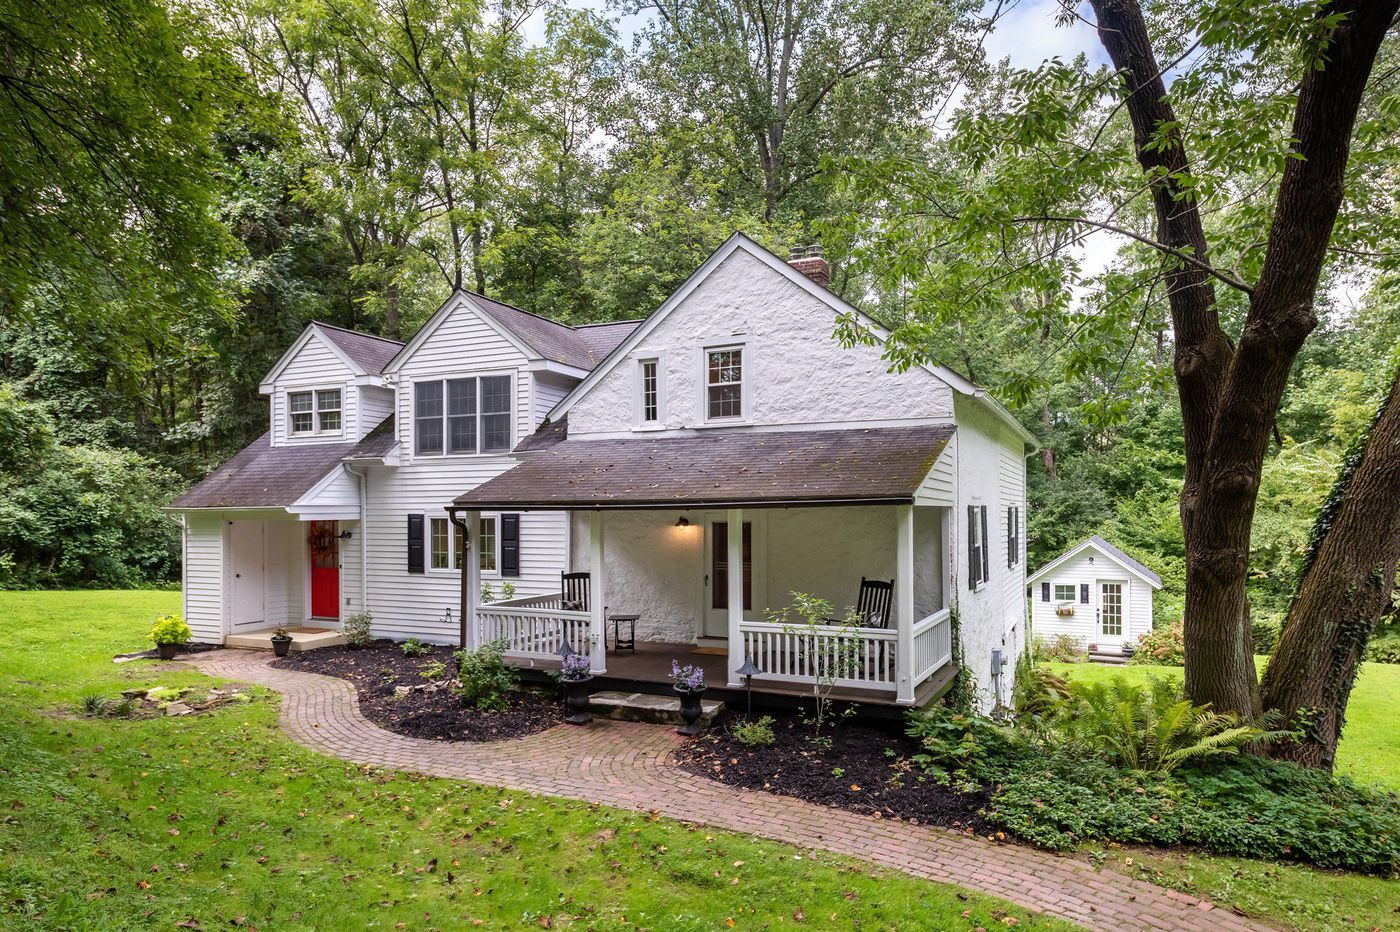 On the market: A secluded, historic house in Bryn Mawr for $699,000